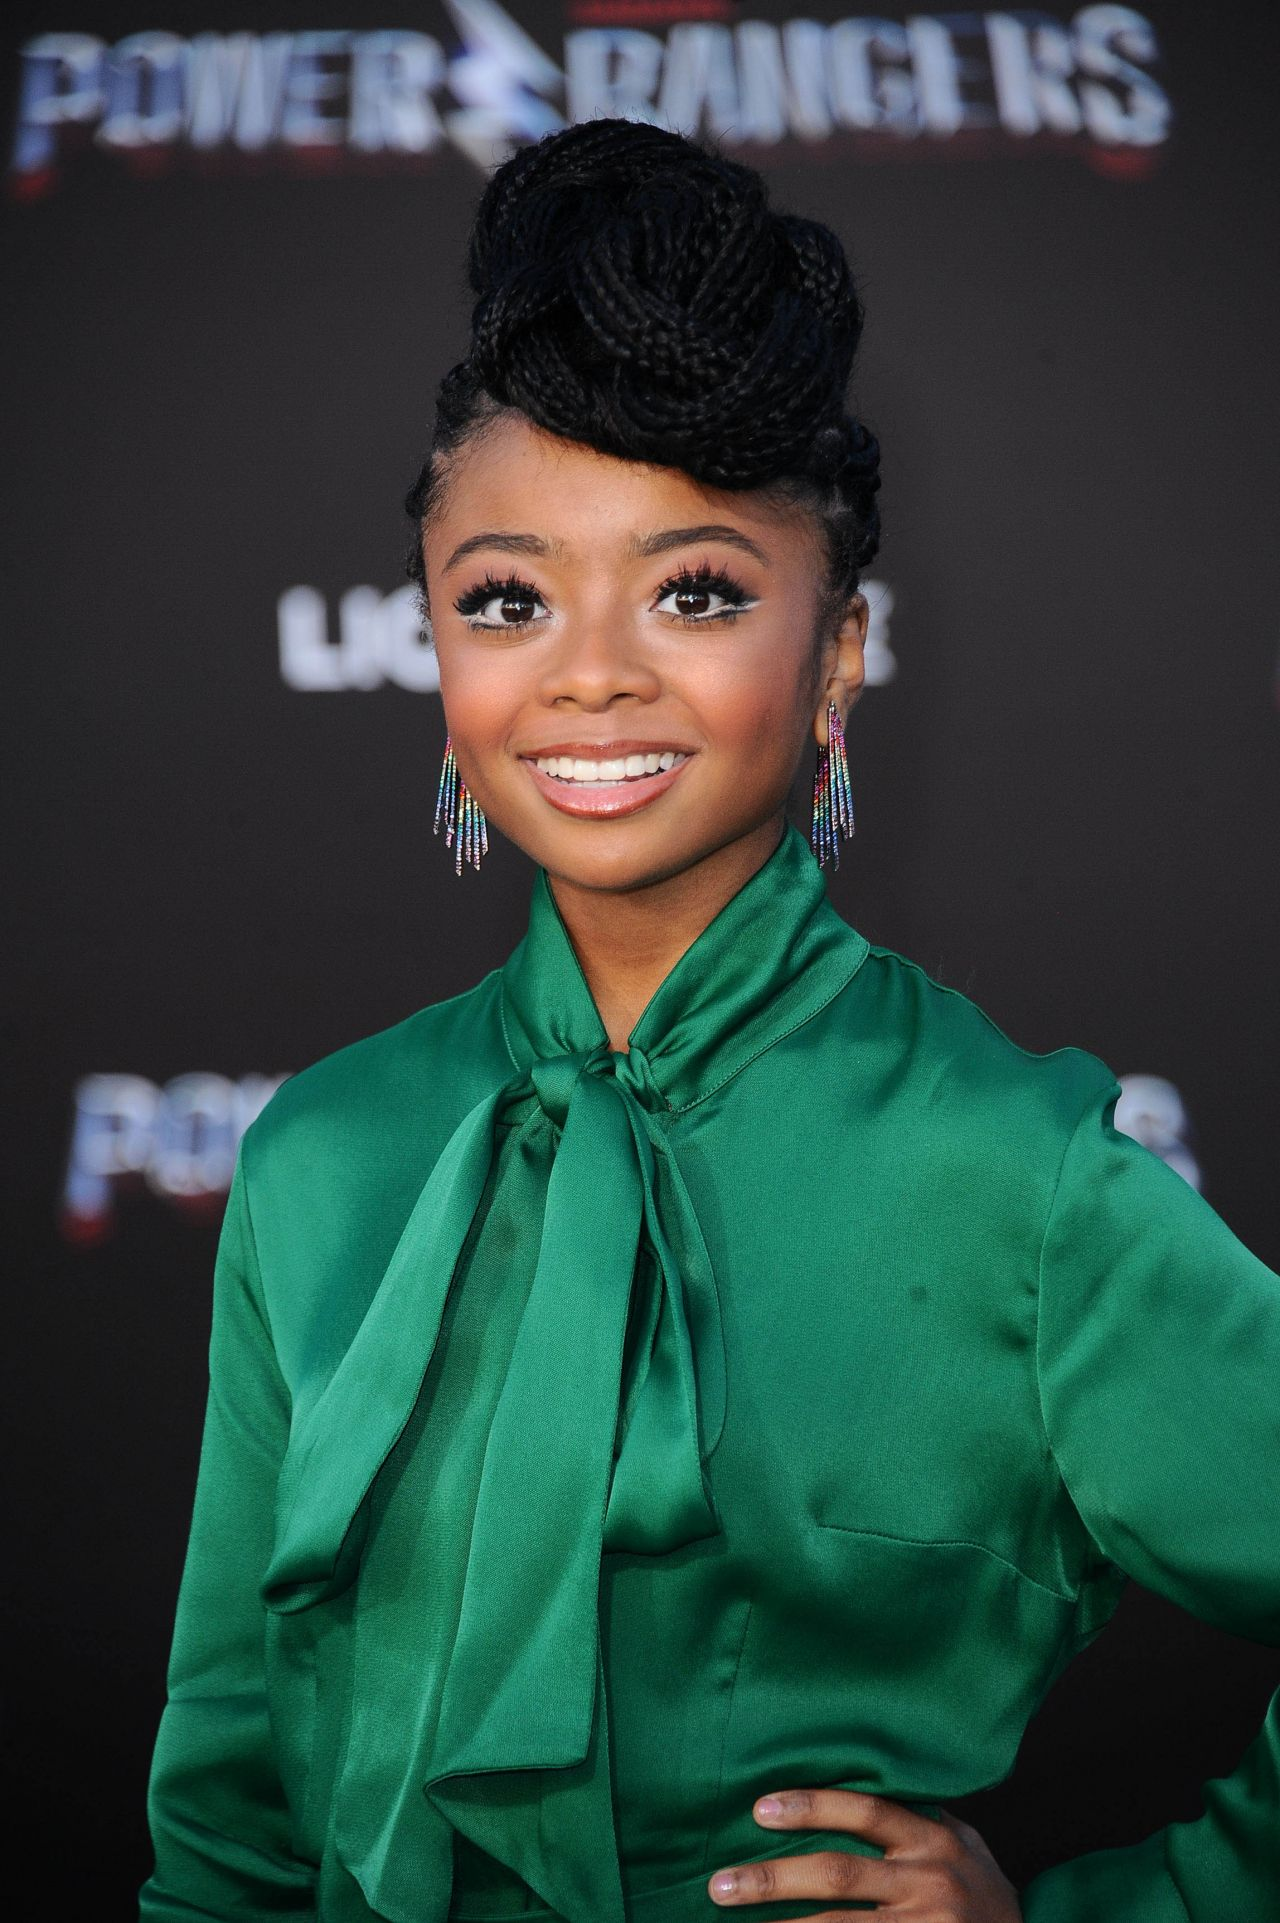 Skai Jackson Power Rangers Premiere In Los Angeles 3 22 2017